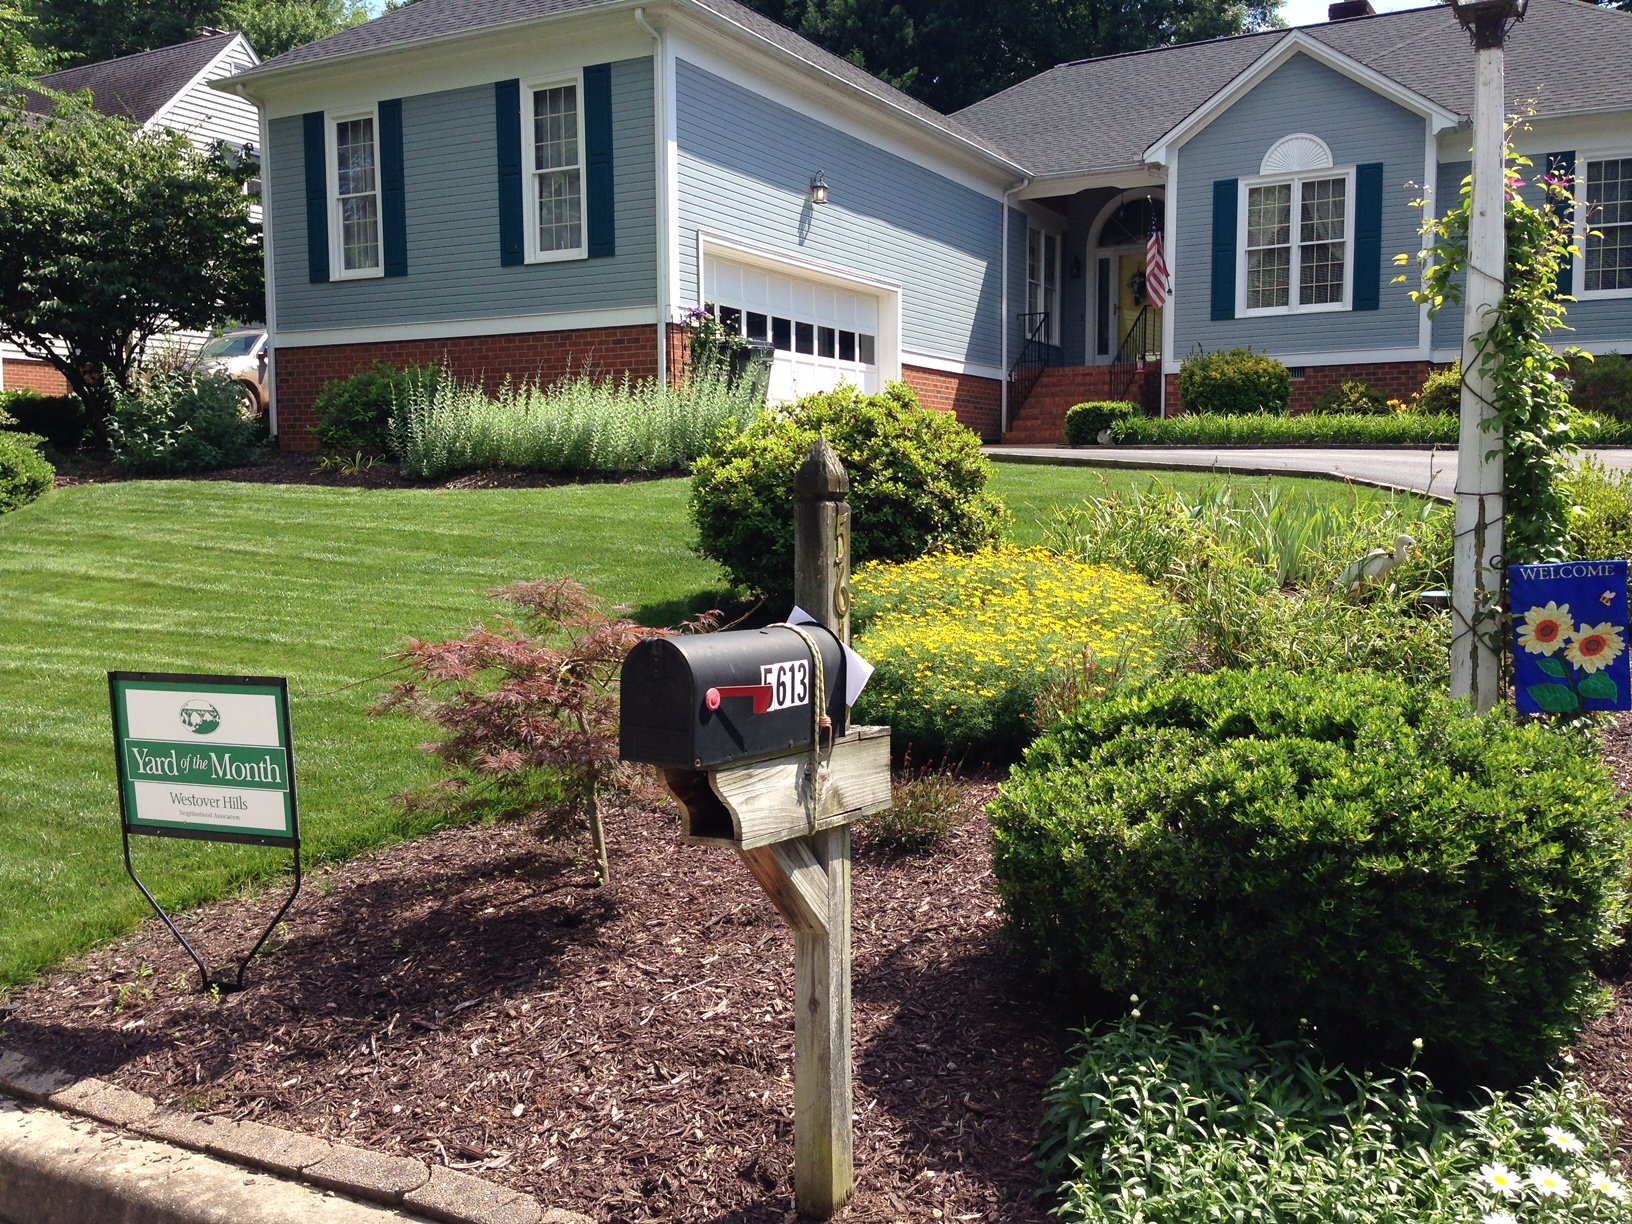 In June, The Grass At This Westover Hills West Home Was Lush And Green And  The Border At The Mail Box Was Beautiful, With Yellow Coreopsis, Shasta  Daisies, ...